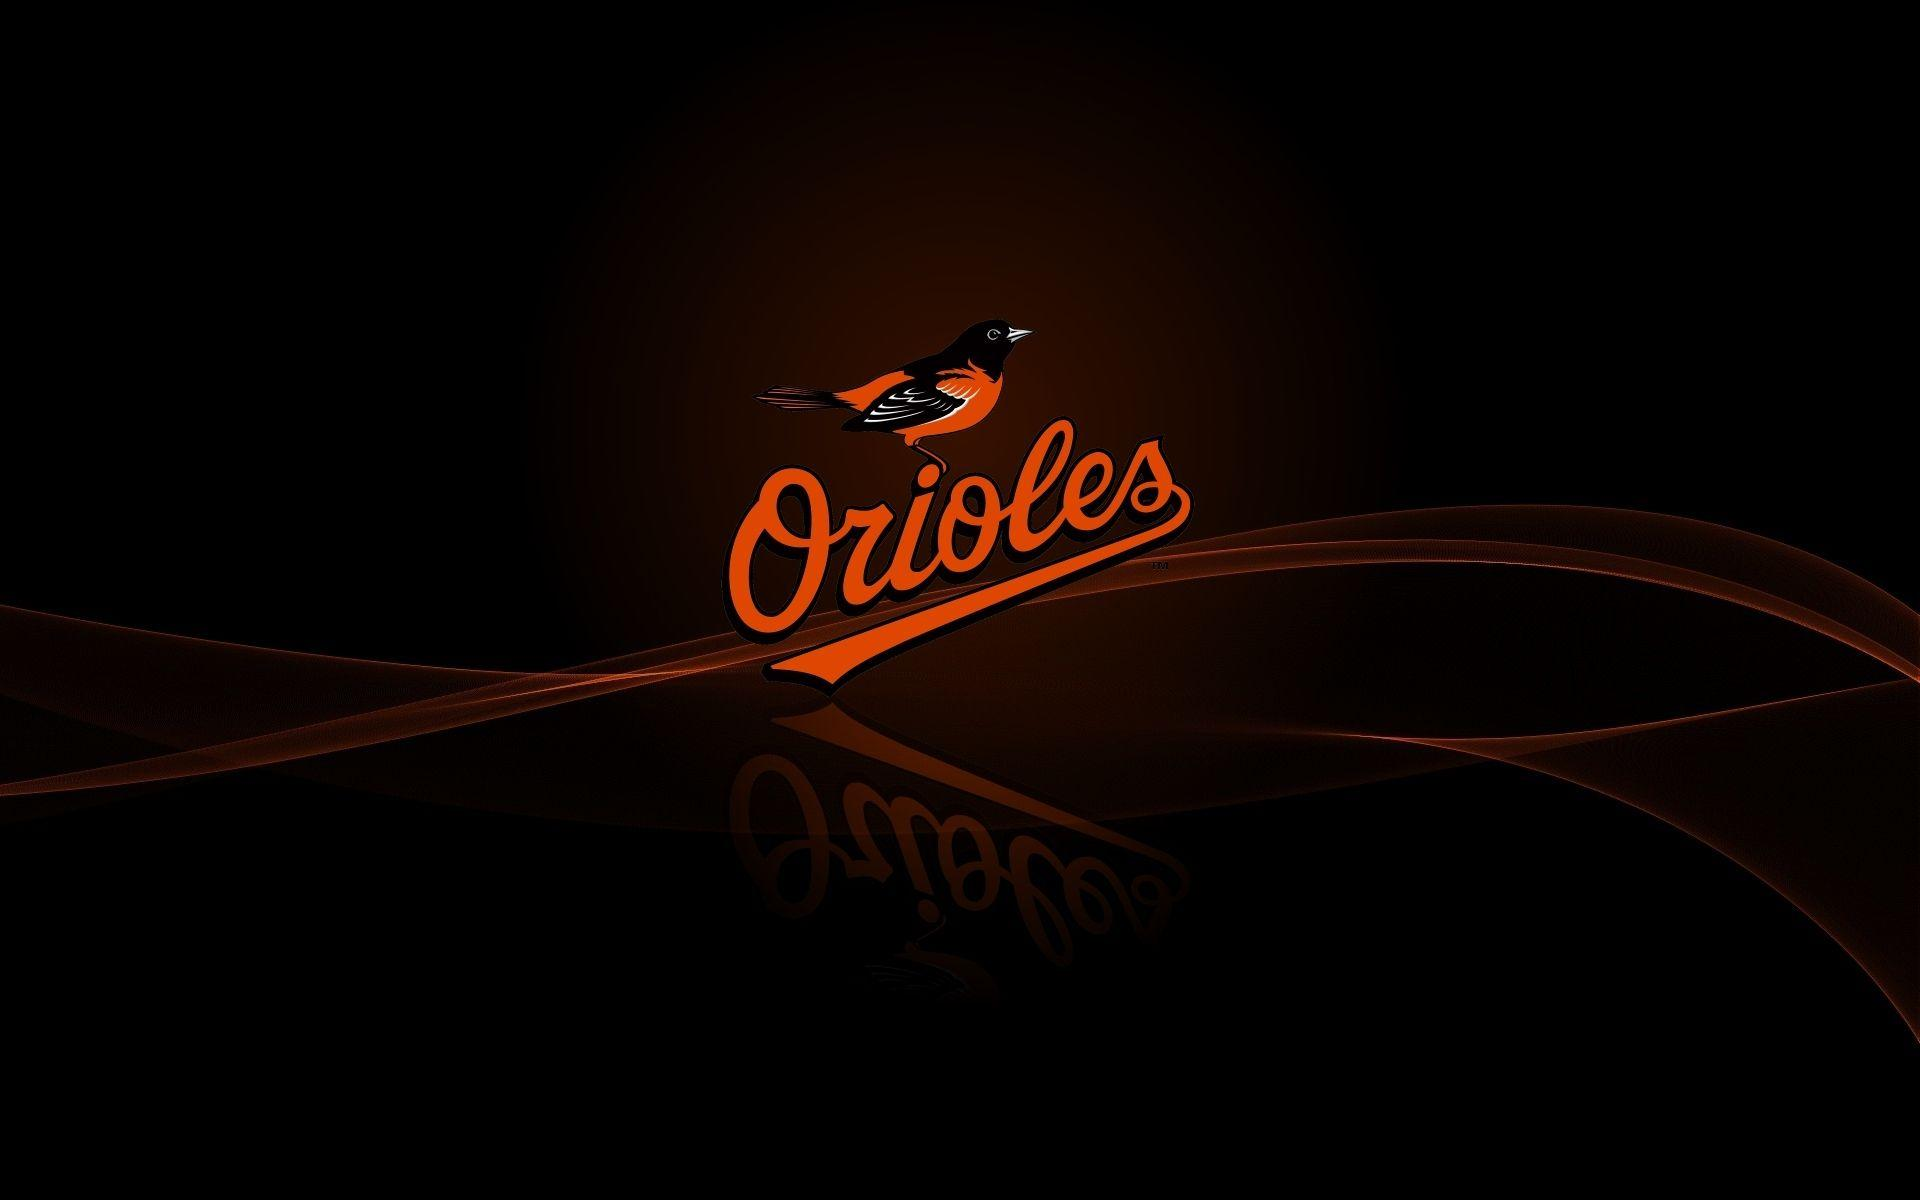 Baltimore Orioles 2018 Wallpapers